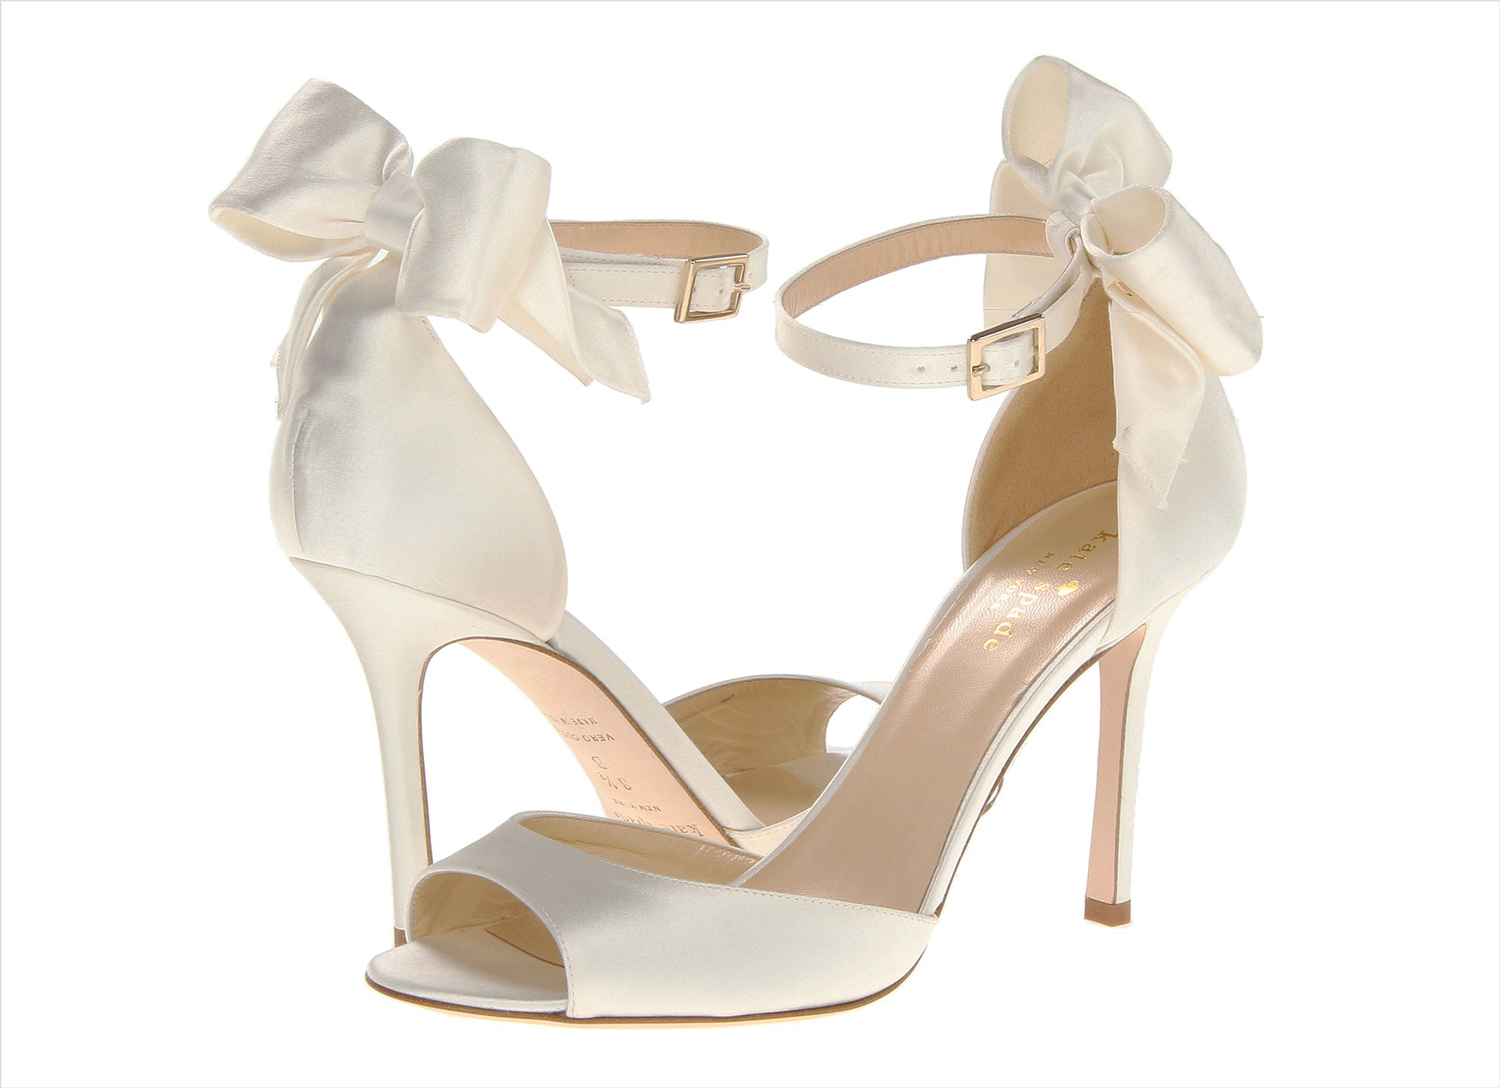 Izzie ivory kate spade new york sandal with bow in back white wedding heels shoes